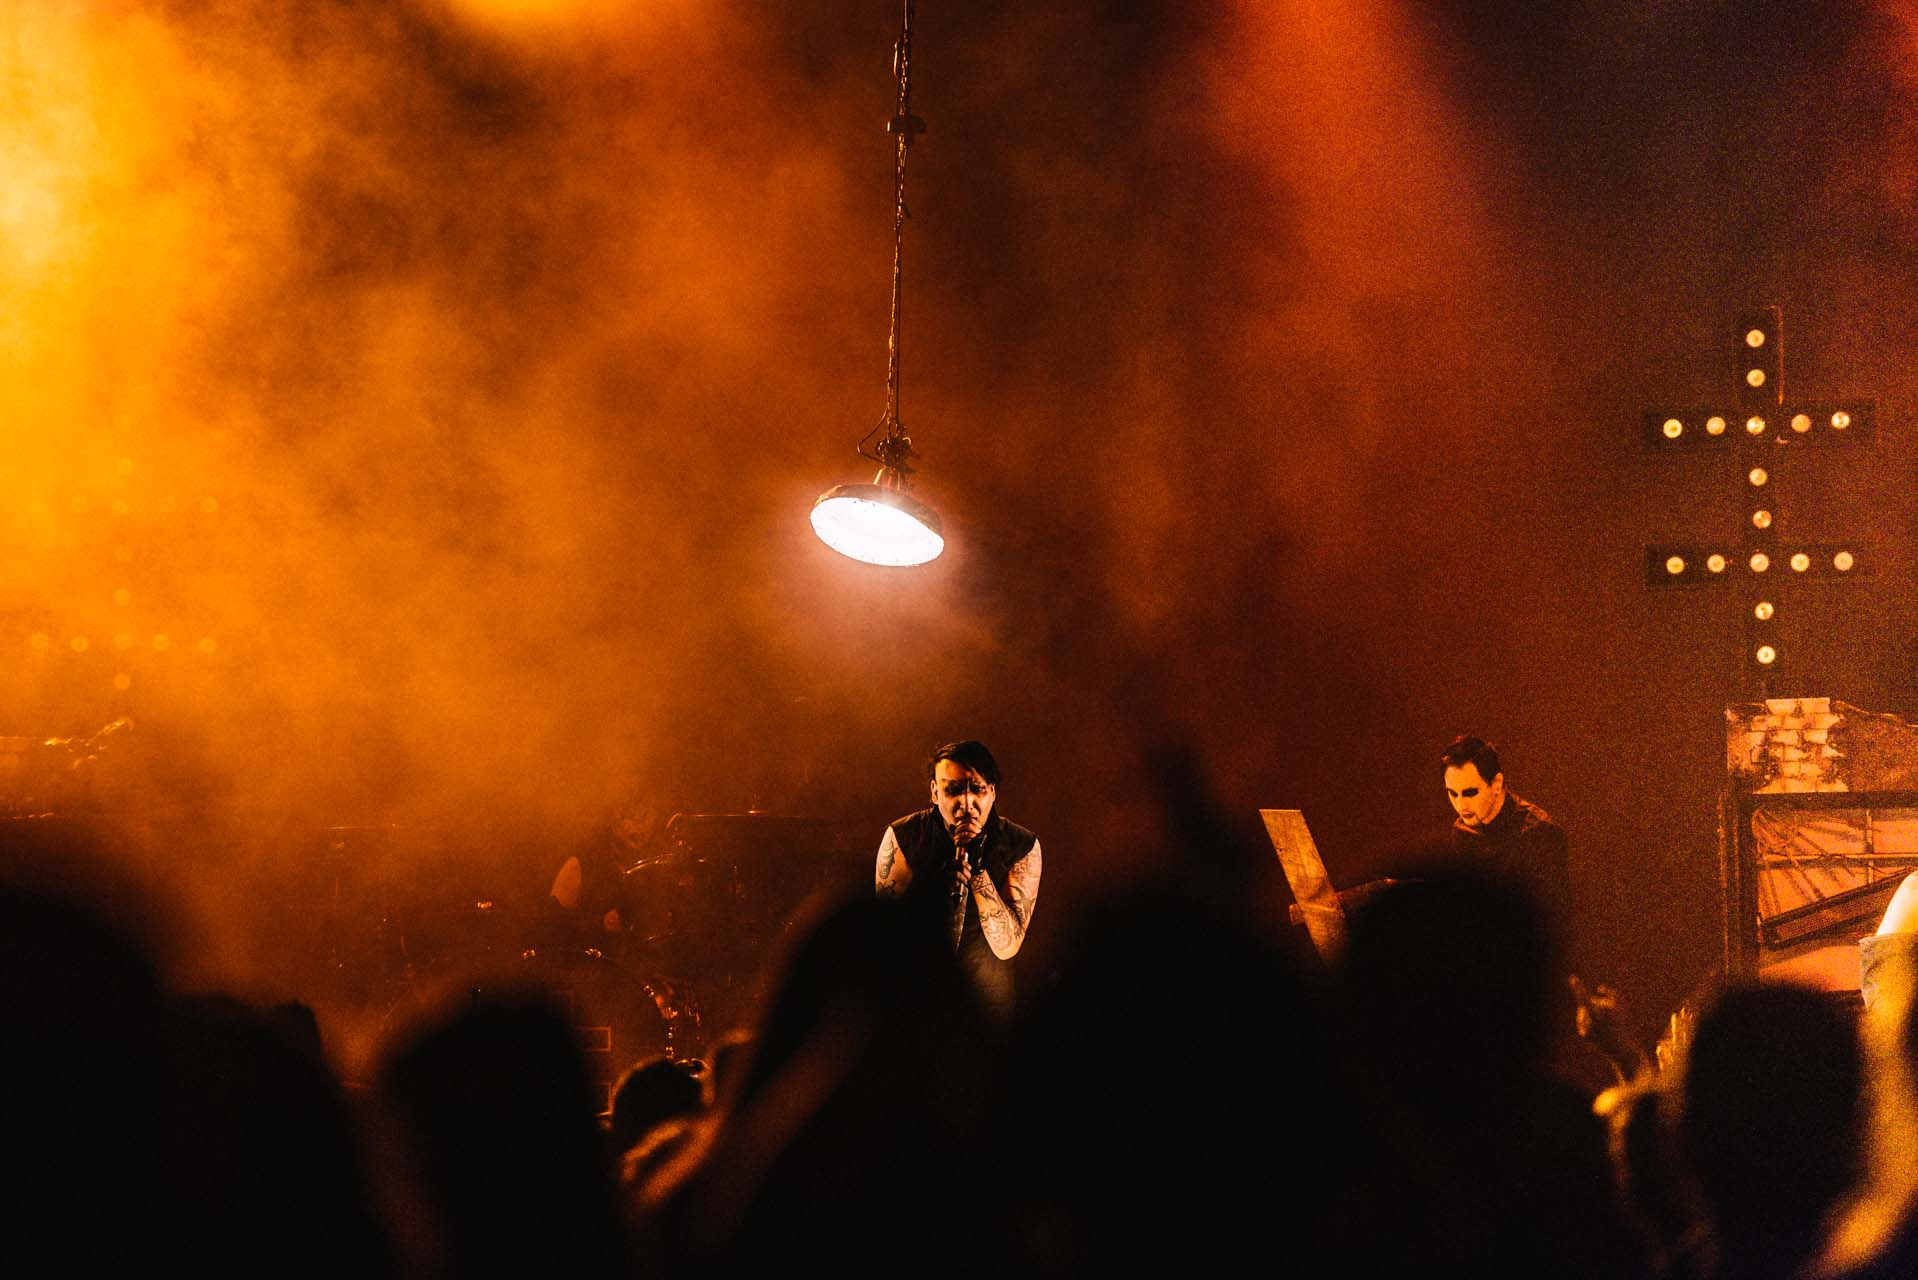 marilyn_manson_live_egyptian_room_indianapolis_2013-35